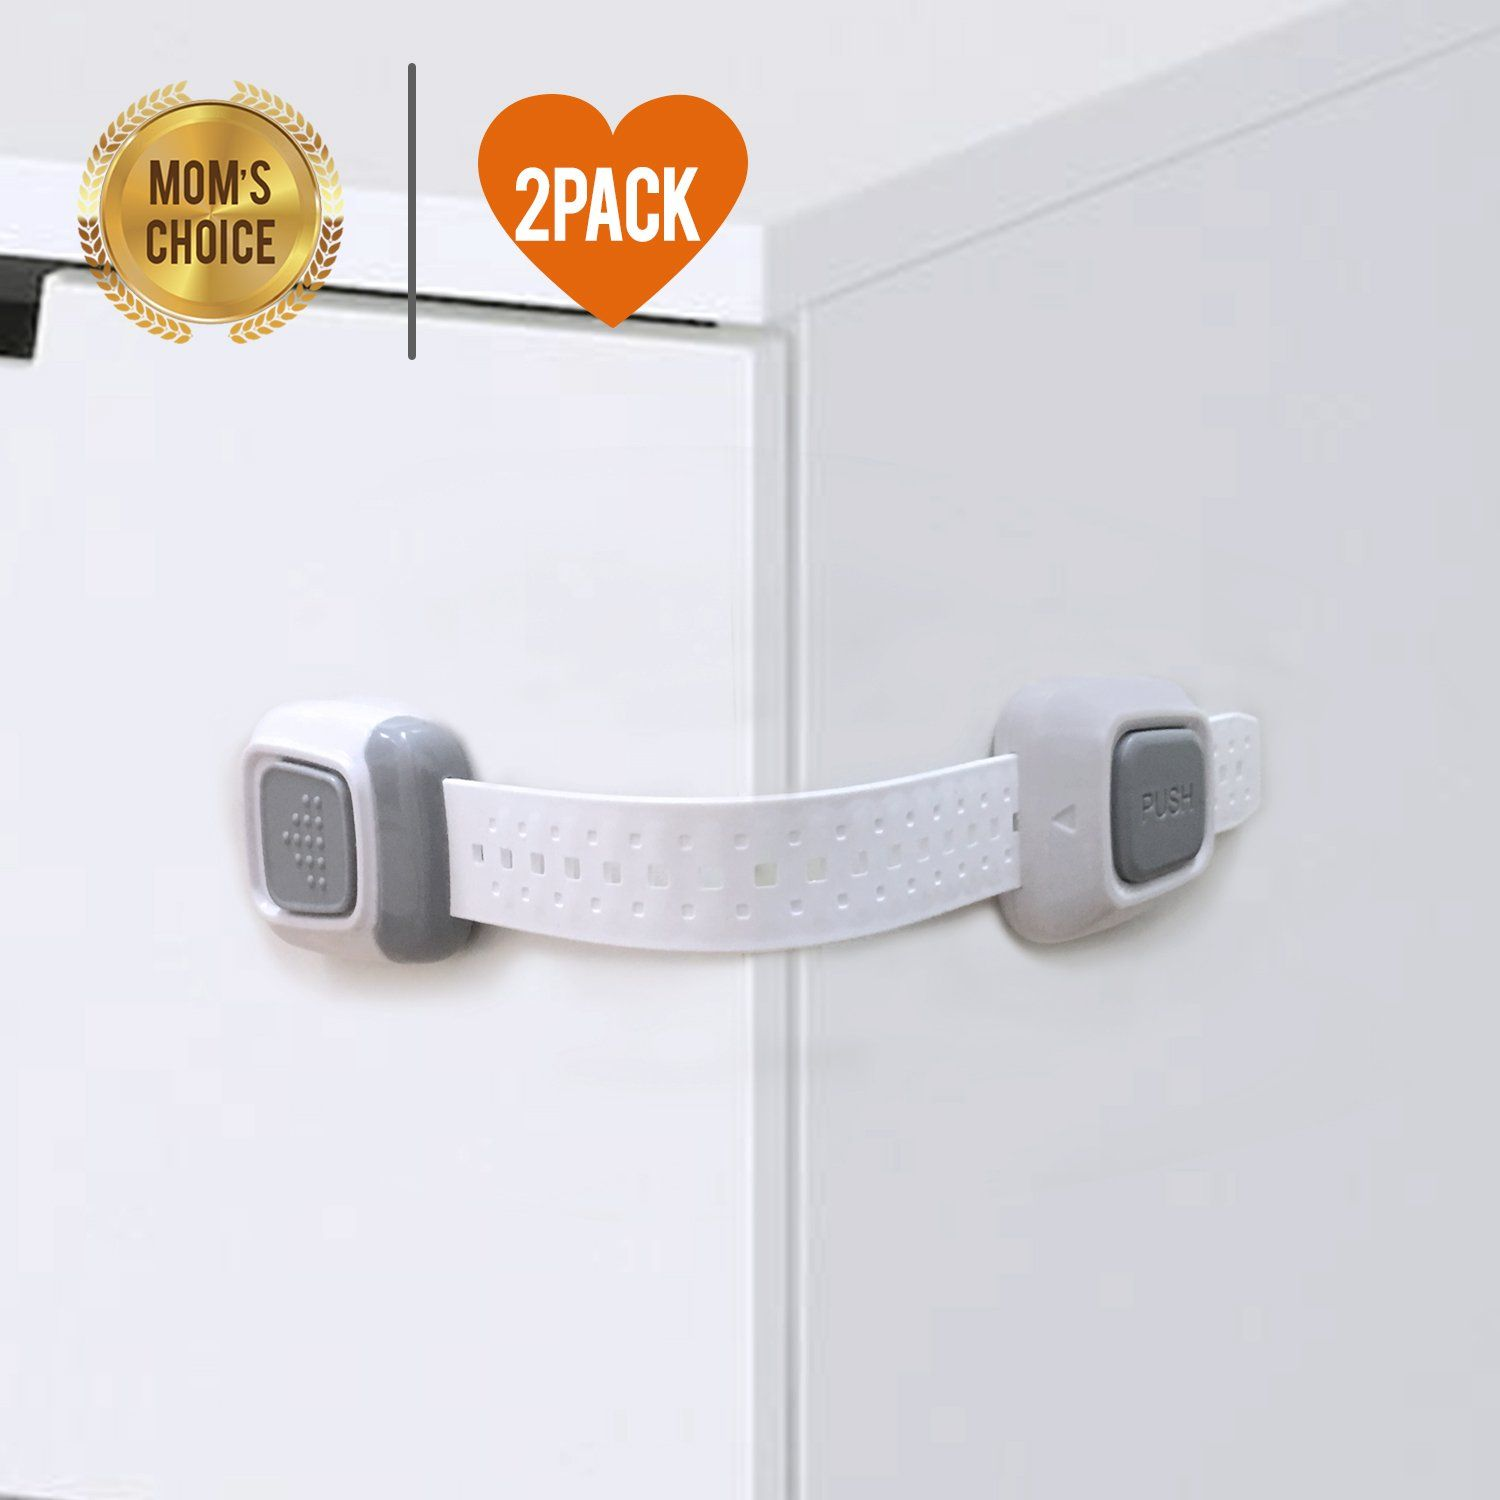 Child safety lock Baby safety lock for Cabinet Refrigerator Toilet Seat Drawers etc 3M Adhesive Included